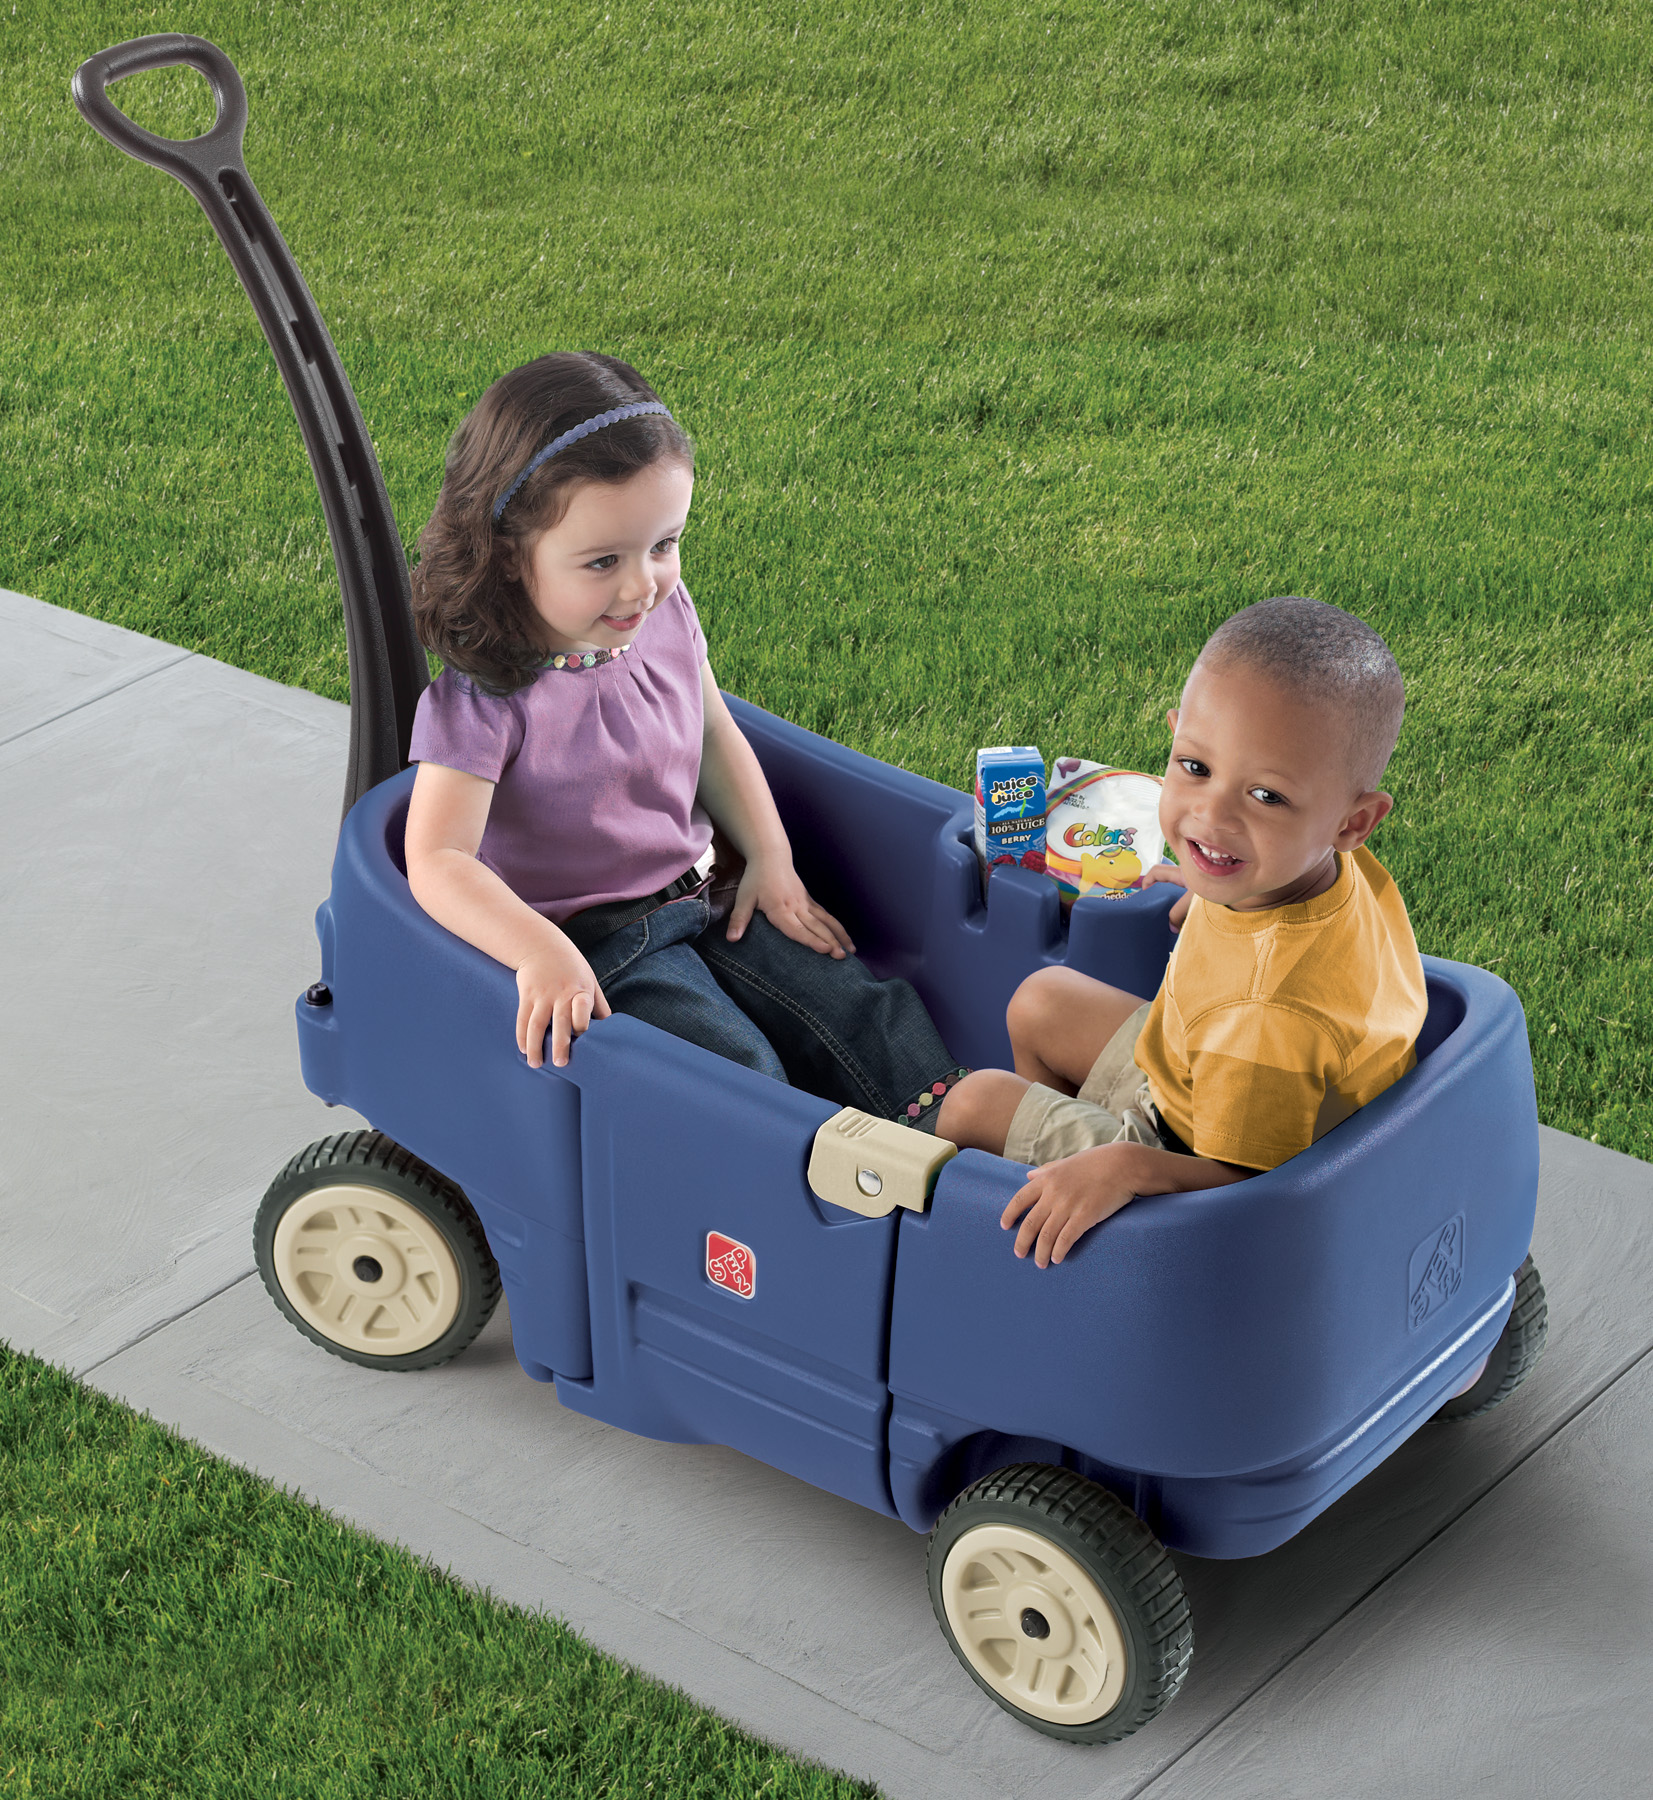 Wagons For Toys : Wagon for two plus kids step